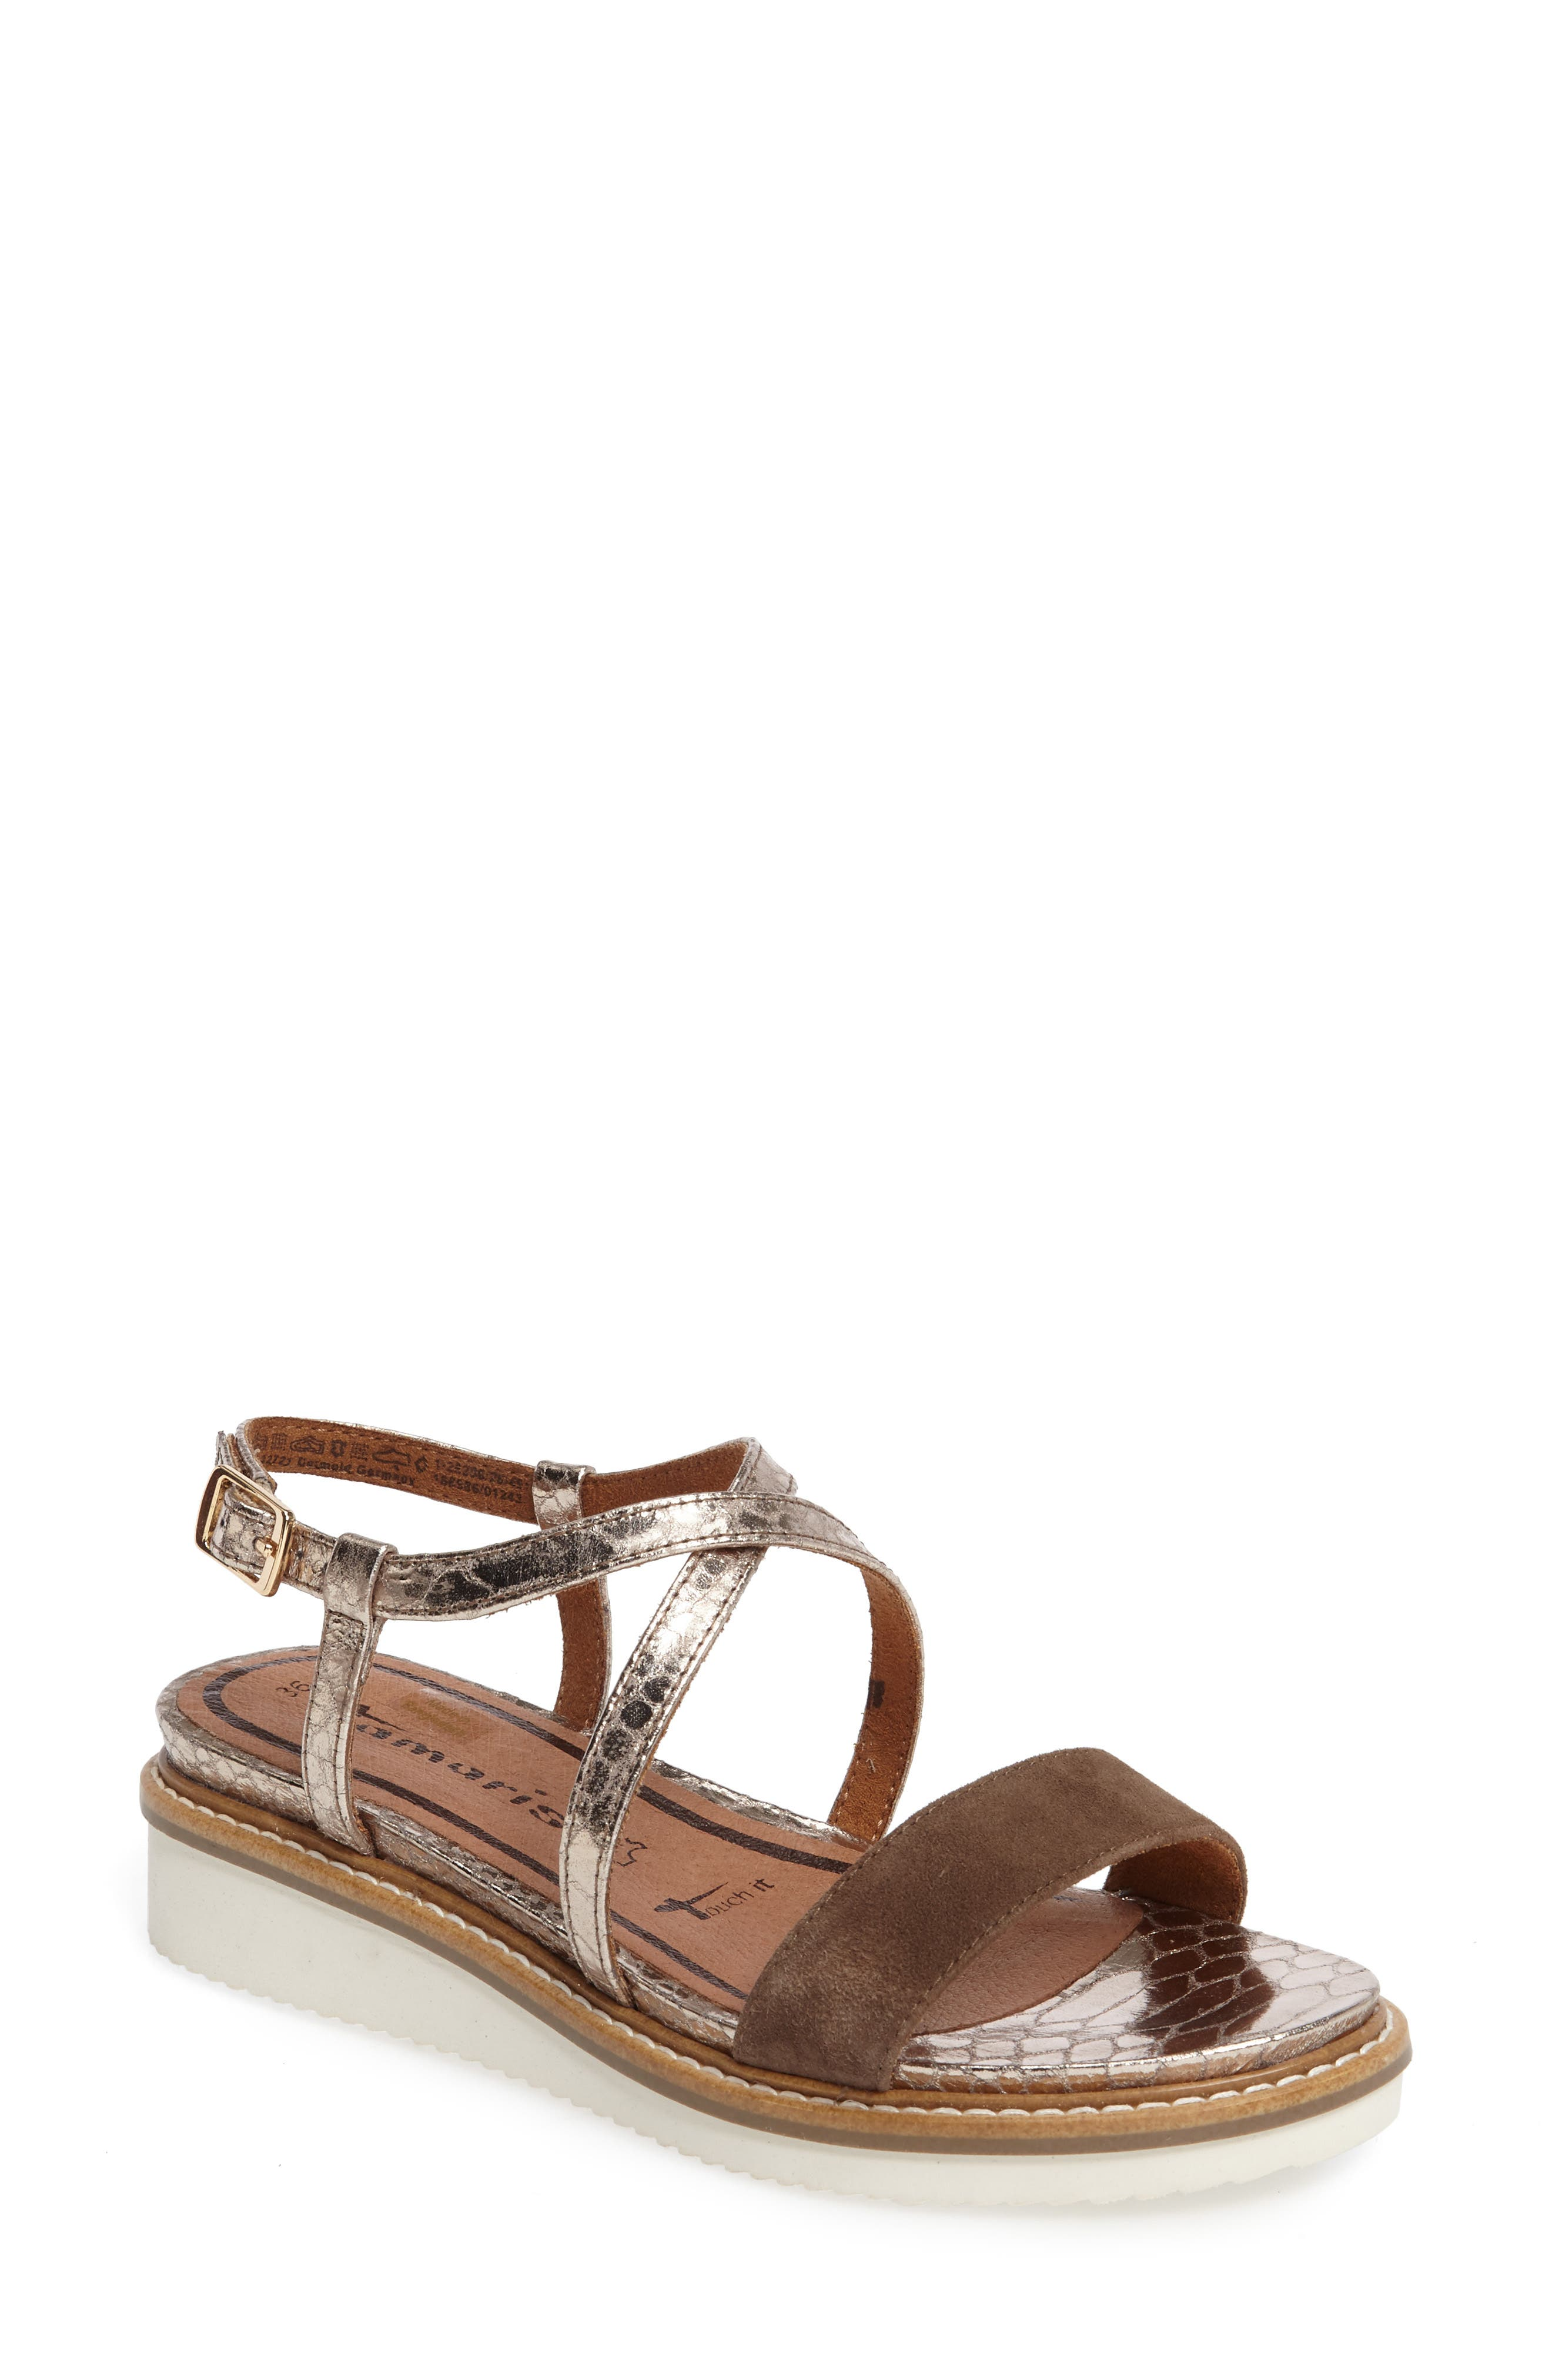 Tamaris 'Eda' Platform Wedge Sandal (Women)